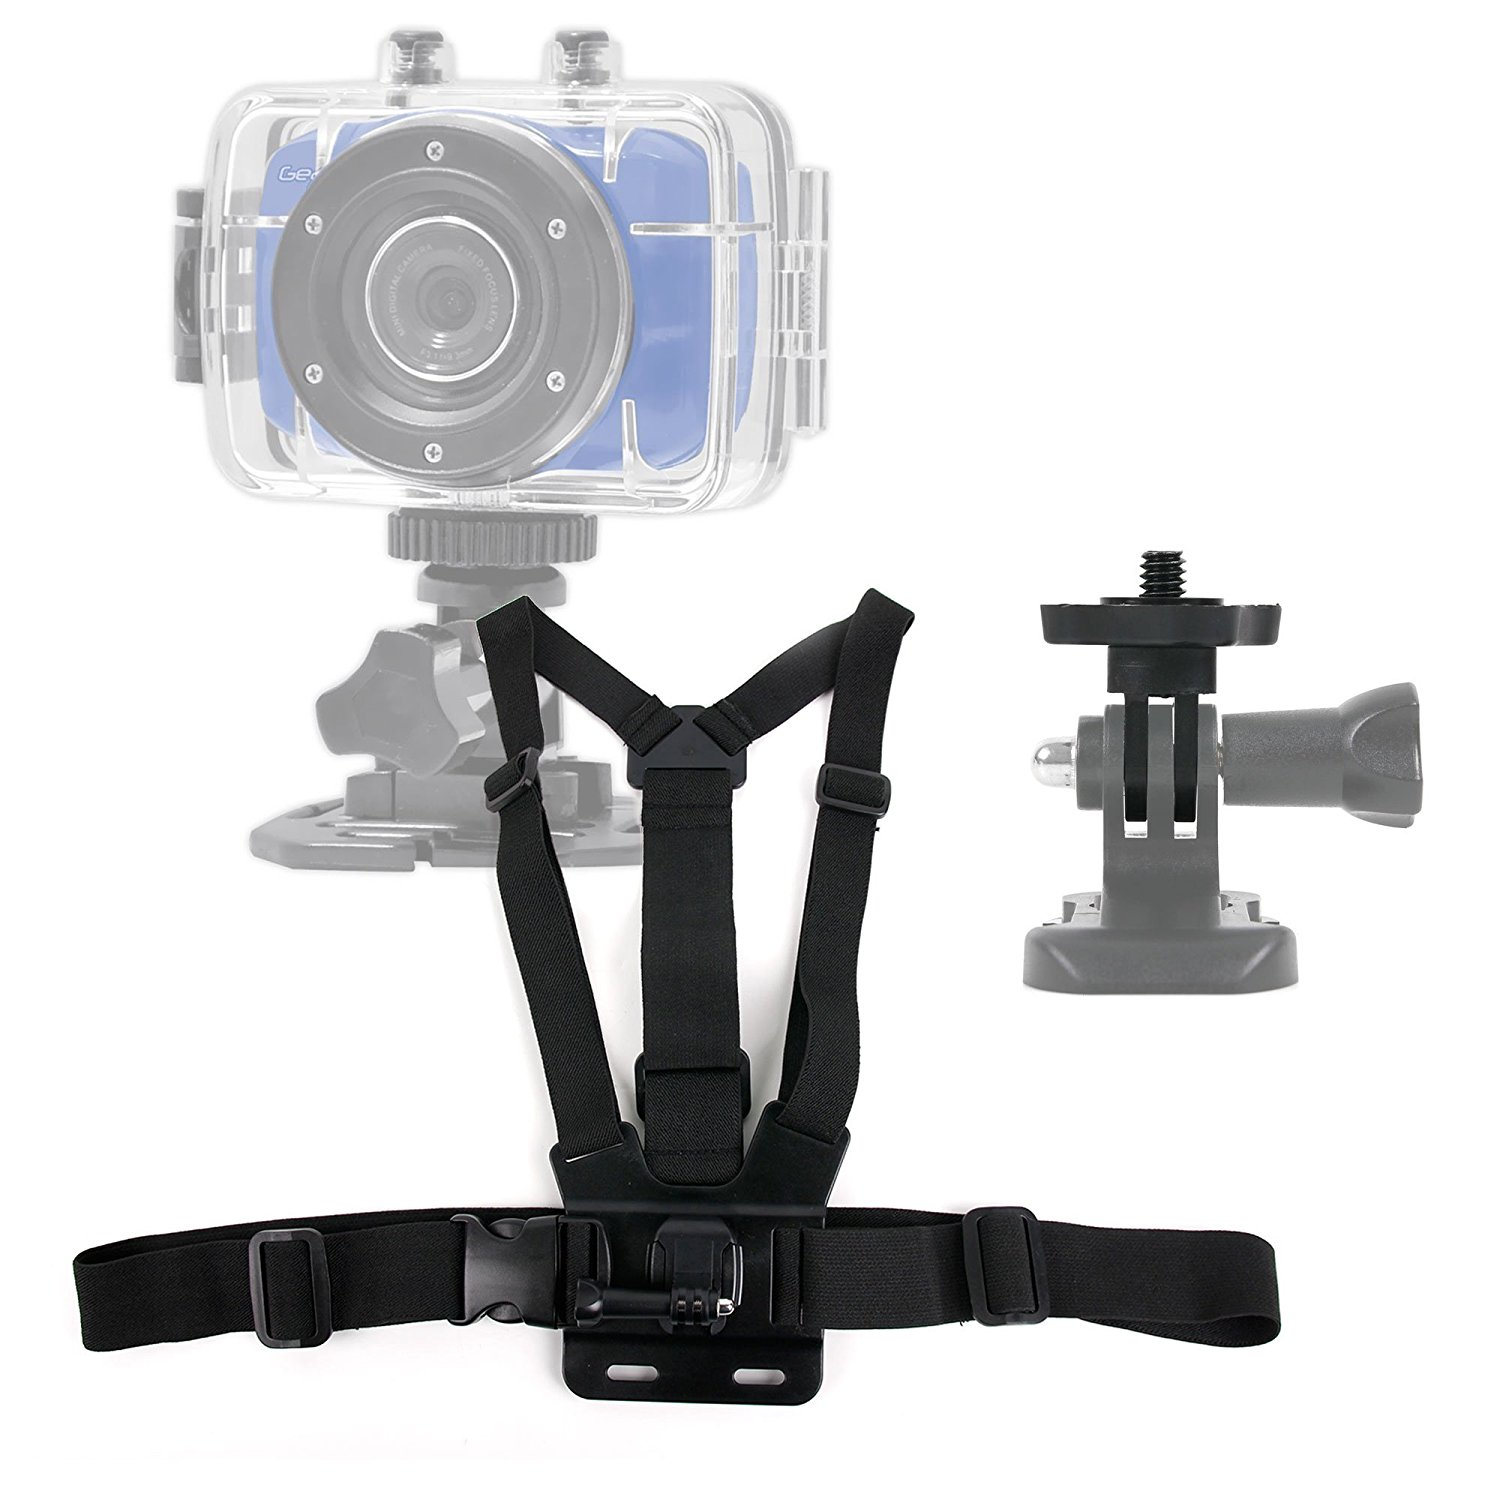 DURAGADGET Premium Quality Buyee HD 1080P Action Camera Chest Harness Mount - Fully Adjustable Chest Harness Mount With Quick Release-Buckle For NEW Buyee HD 1080P Waterproof Sports Action Camera Helmet Camcorder DV Touch Screen